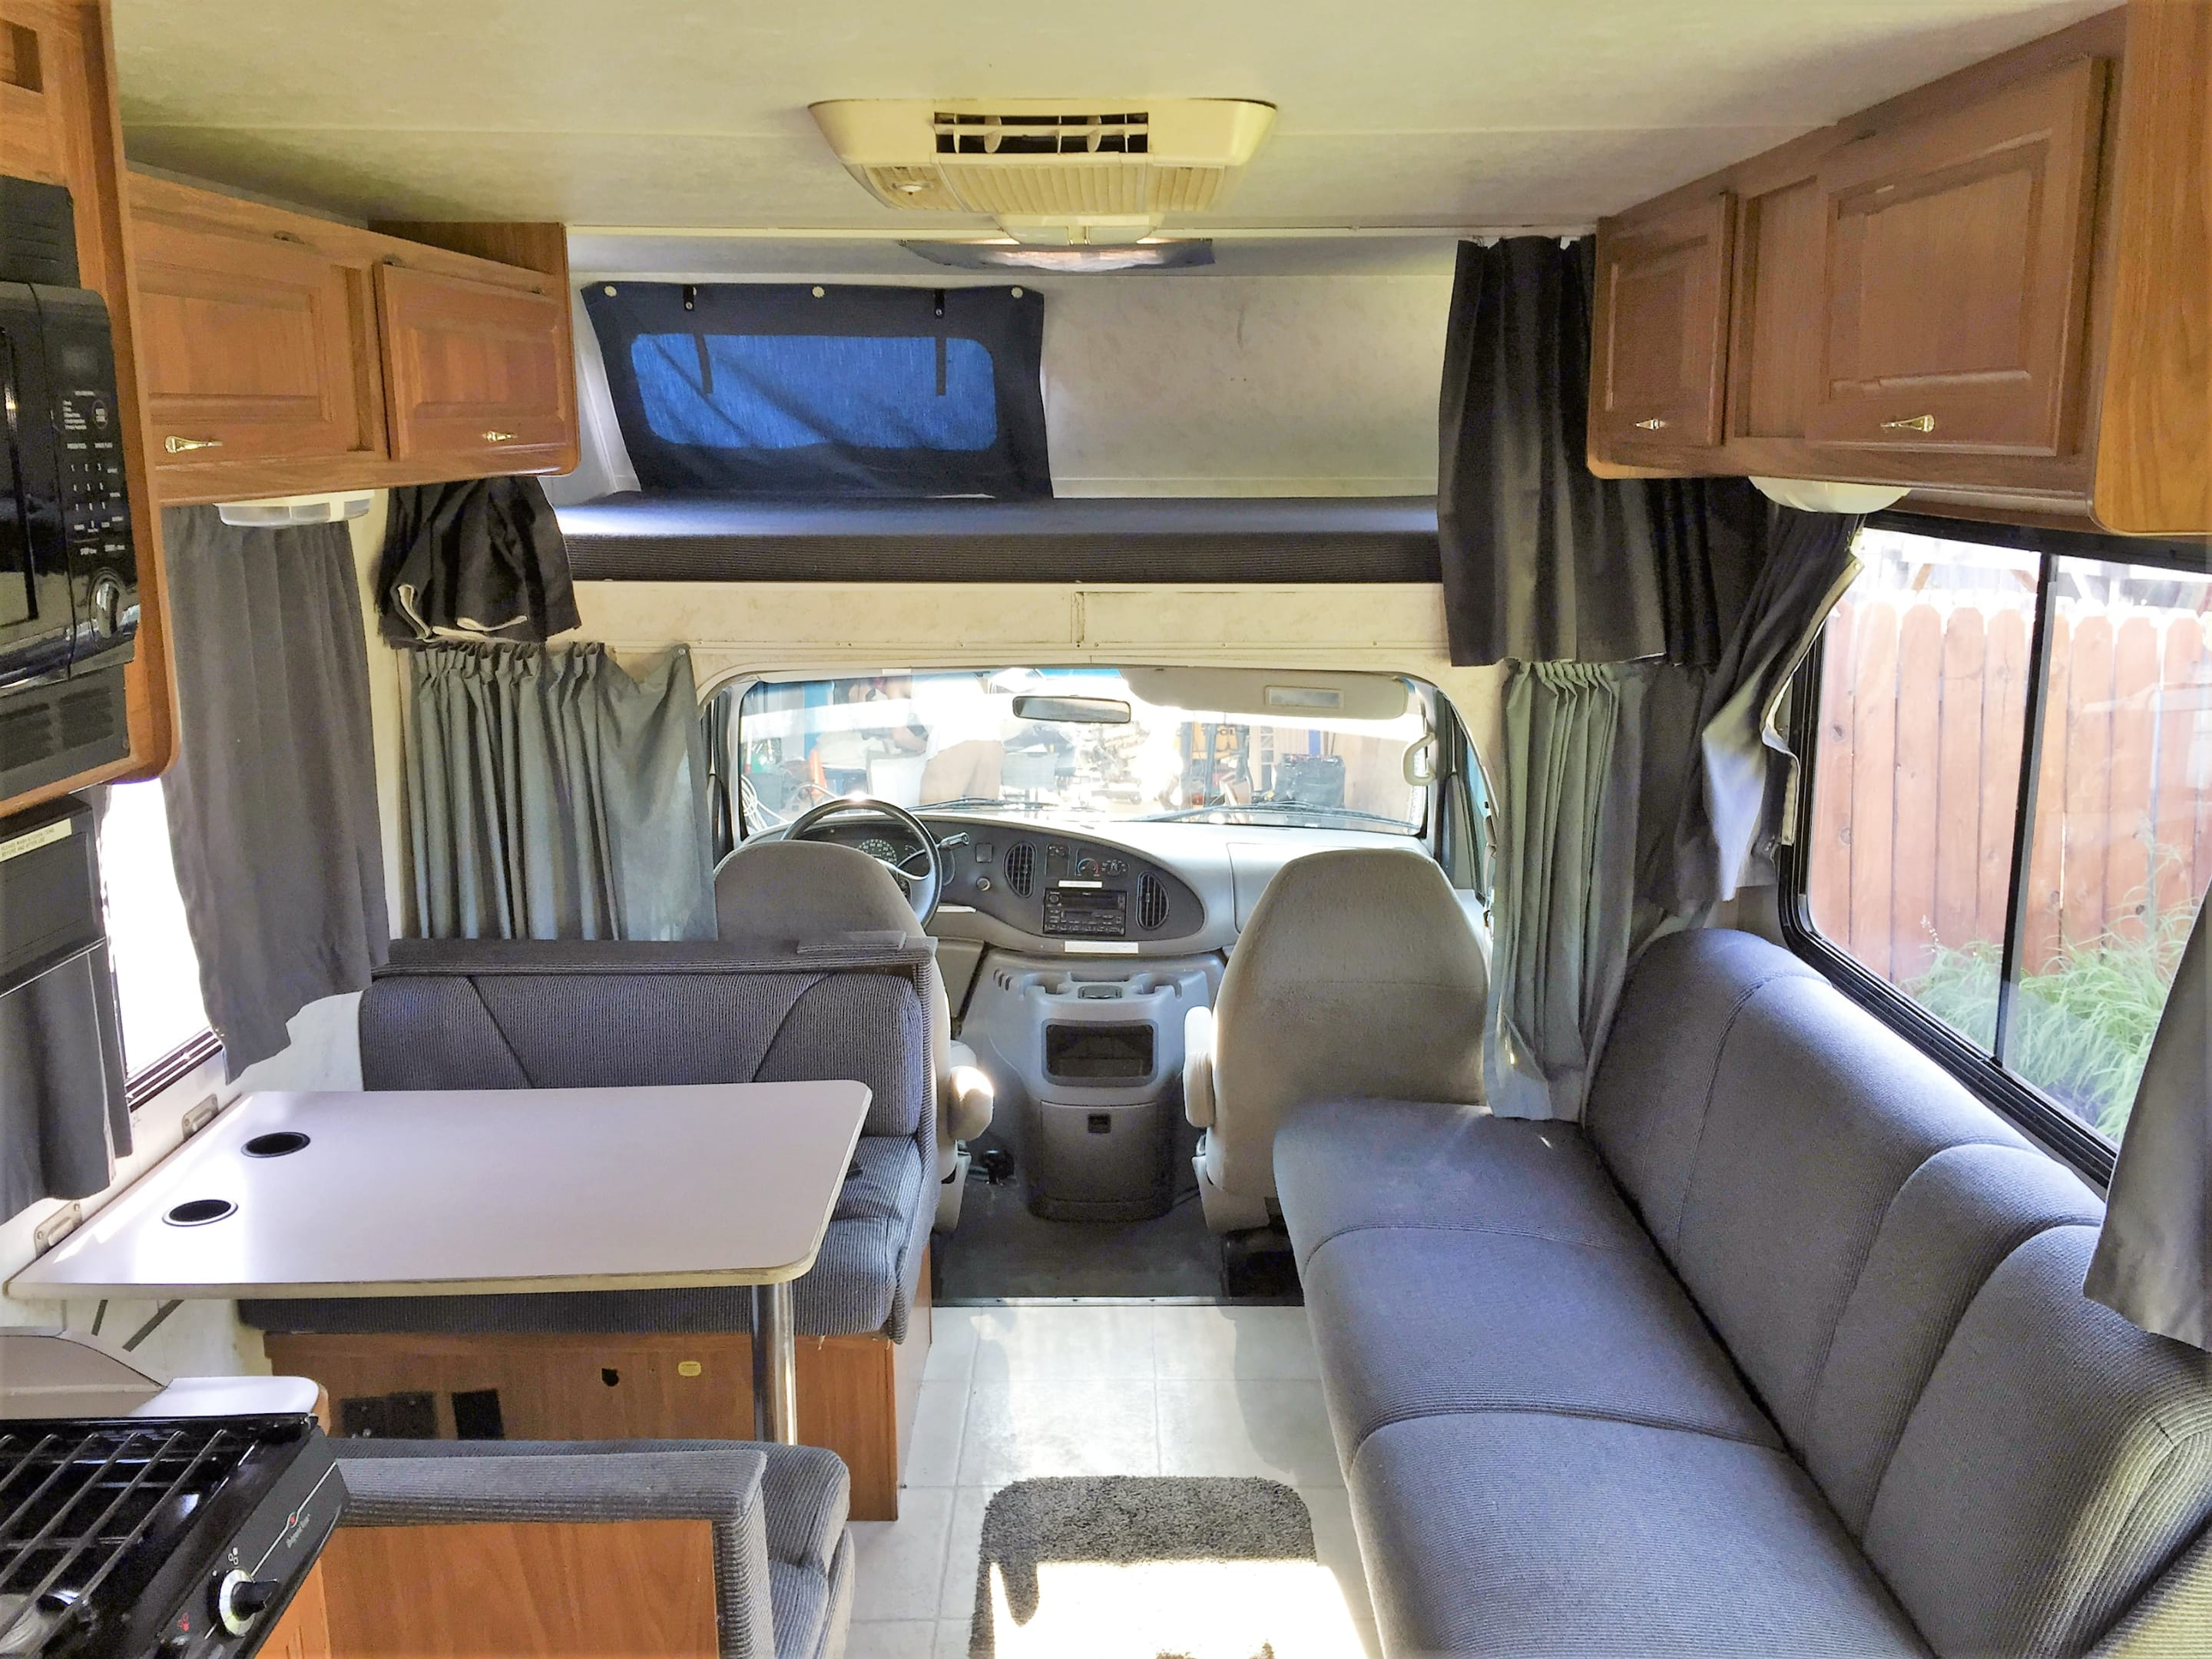 Interior Dinette, Couch, and Bunk. Thor Motor Coach Four Winds Majestic 2002